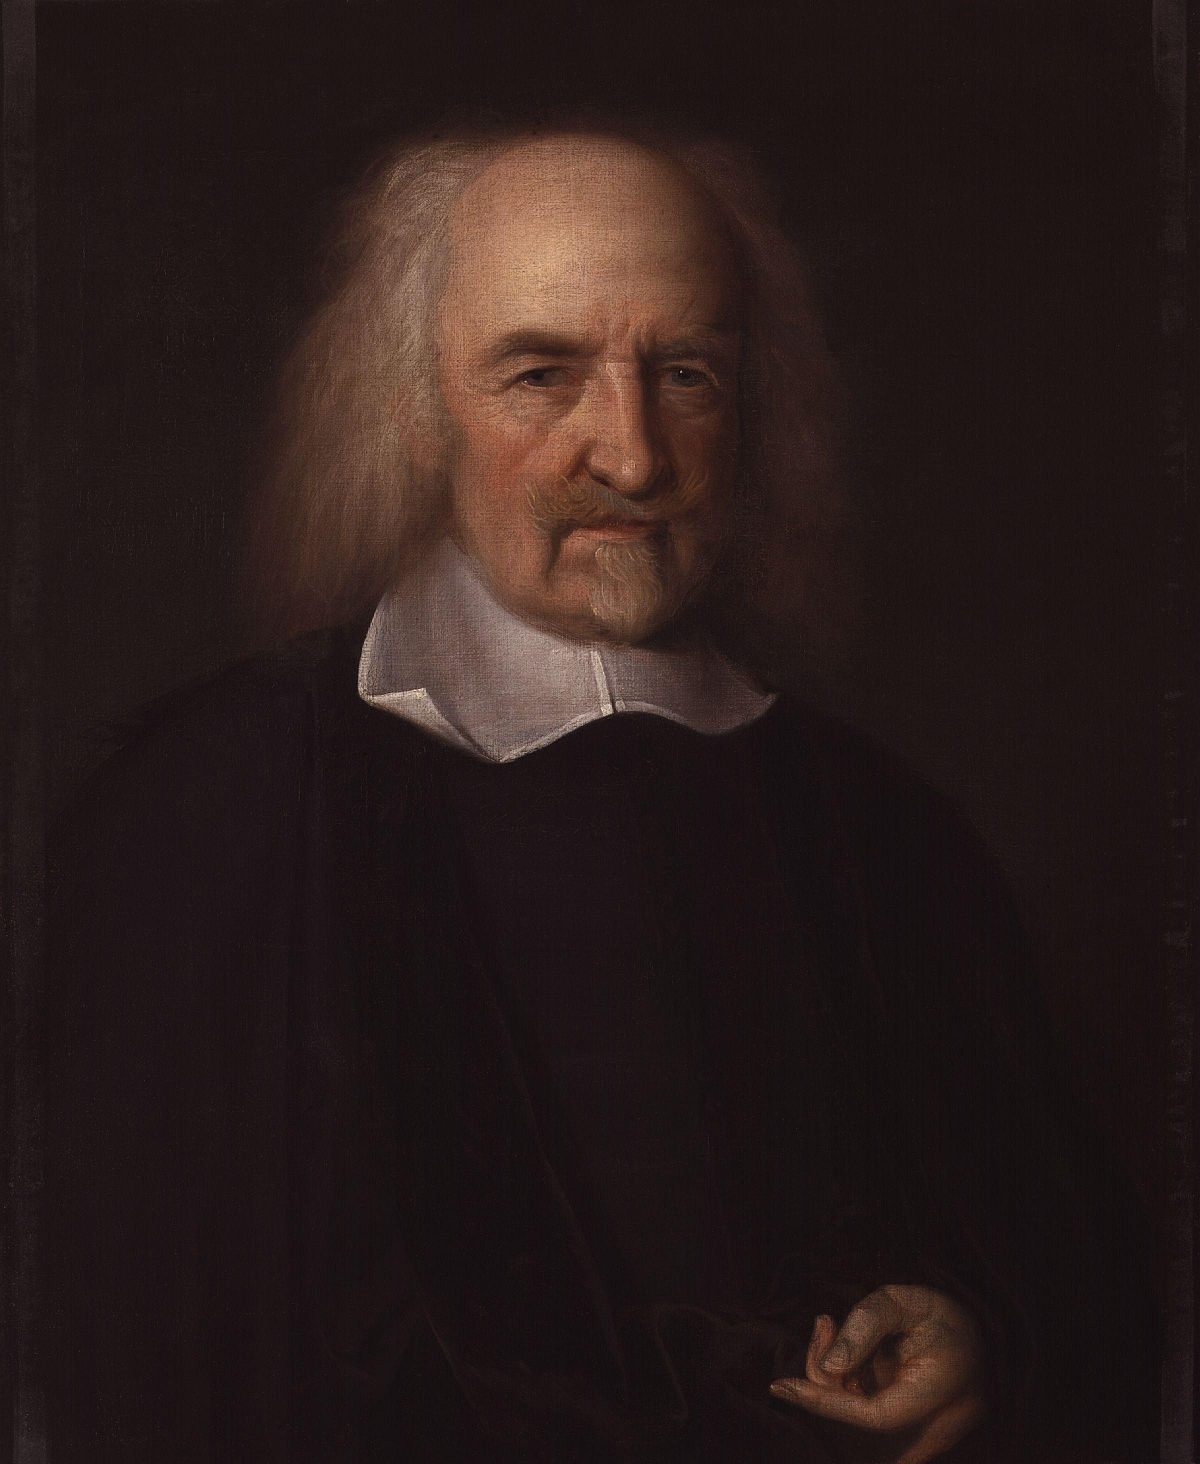 john locke and thoomas hobbes Hobbes' and locke's human nature and government evaluates the philosphies of hobbes and locke outlining the state of nature, natural laws, the social contract theory and government the overall aim of this essay is to explain and discuss the political philosophy of thomas hobbes and john locke in relation to human nature and government.